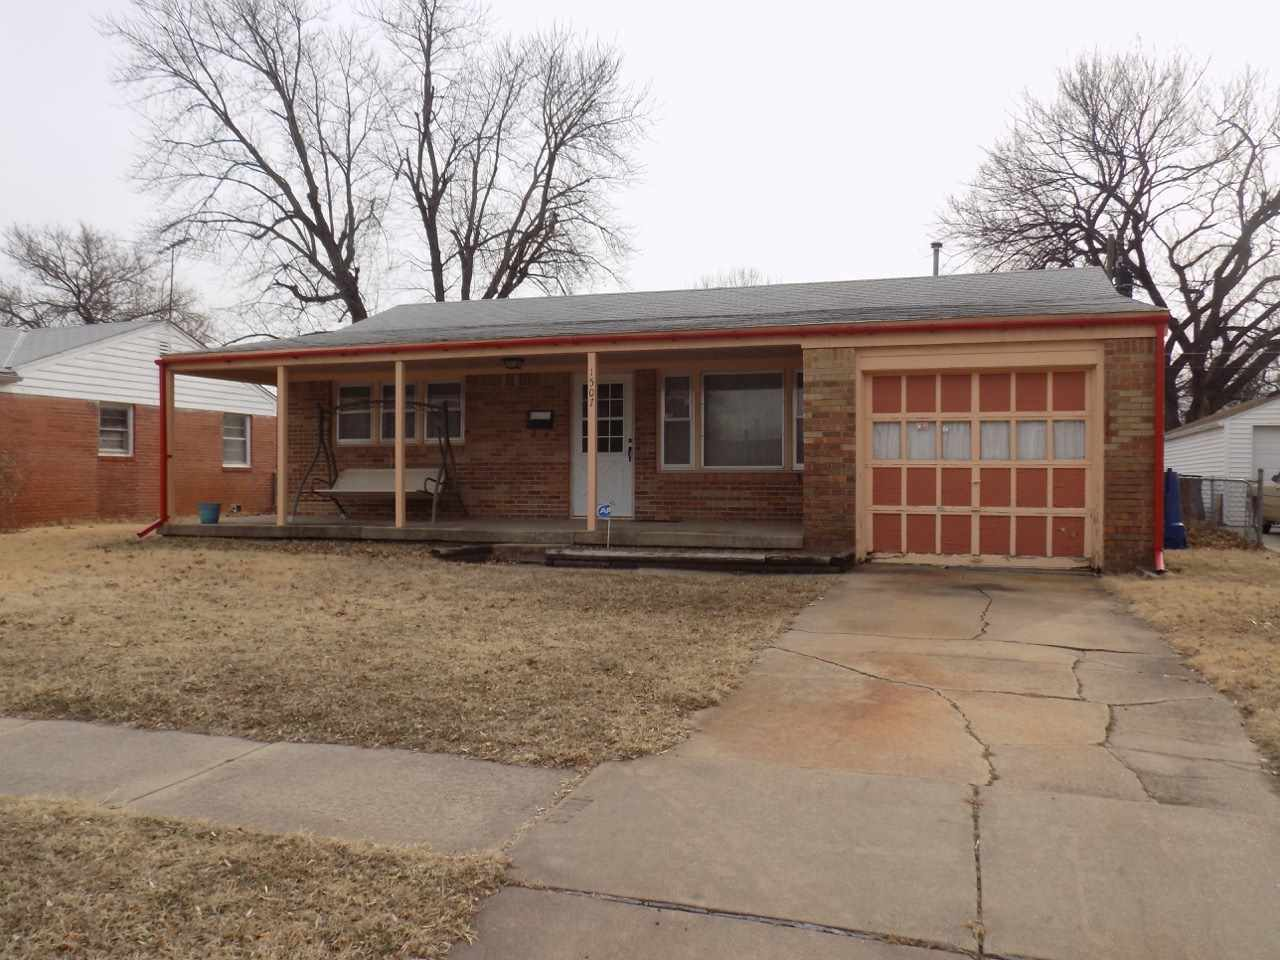 Great opportunity for home ownership or investment property! This 2 BR 1 BA home offers an all brick